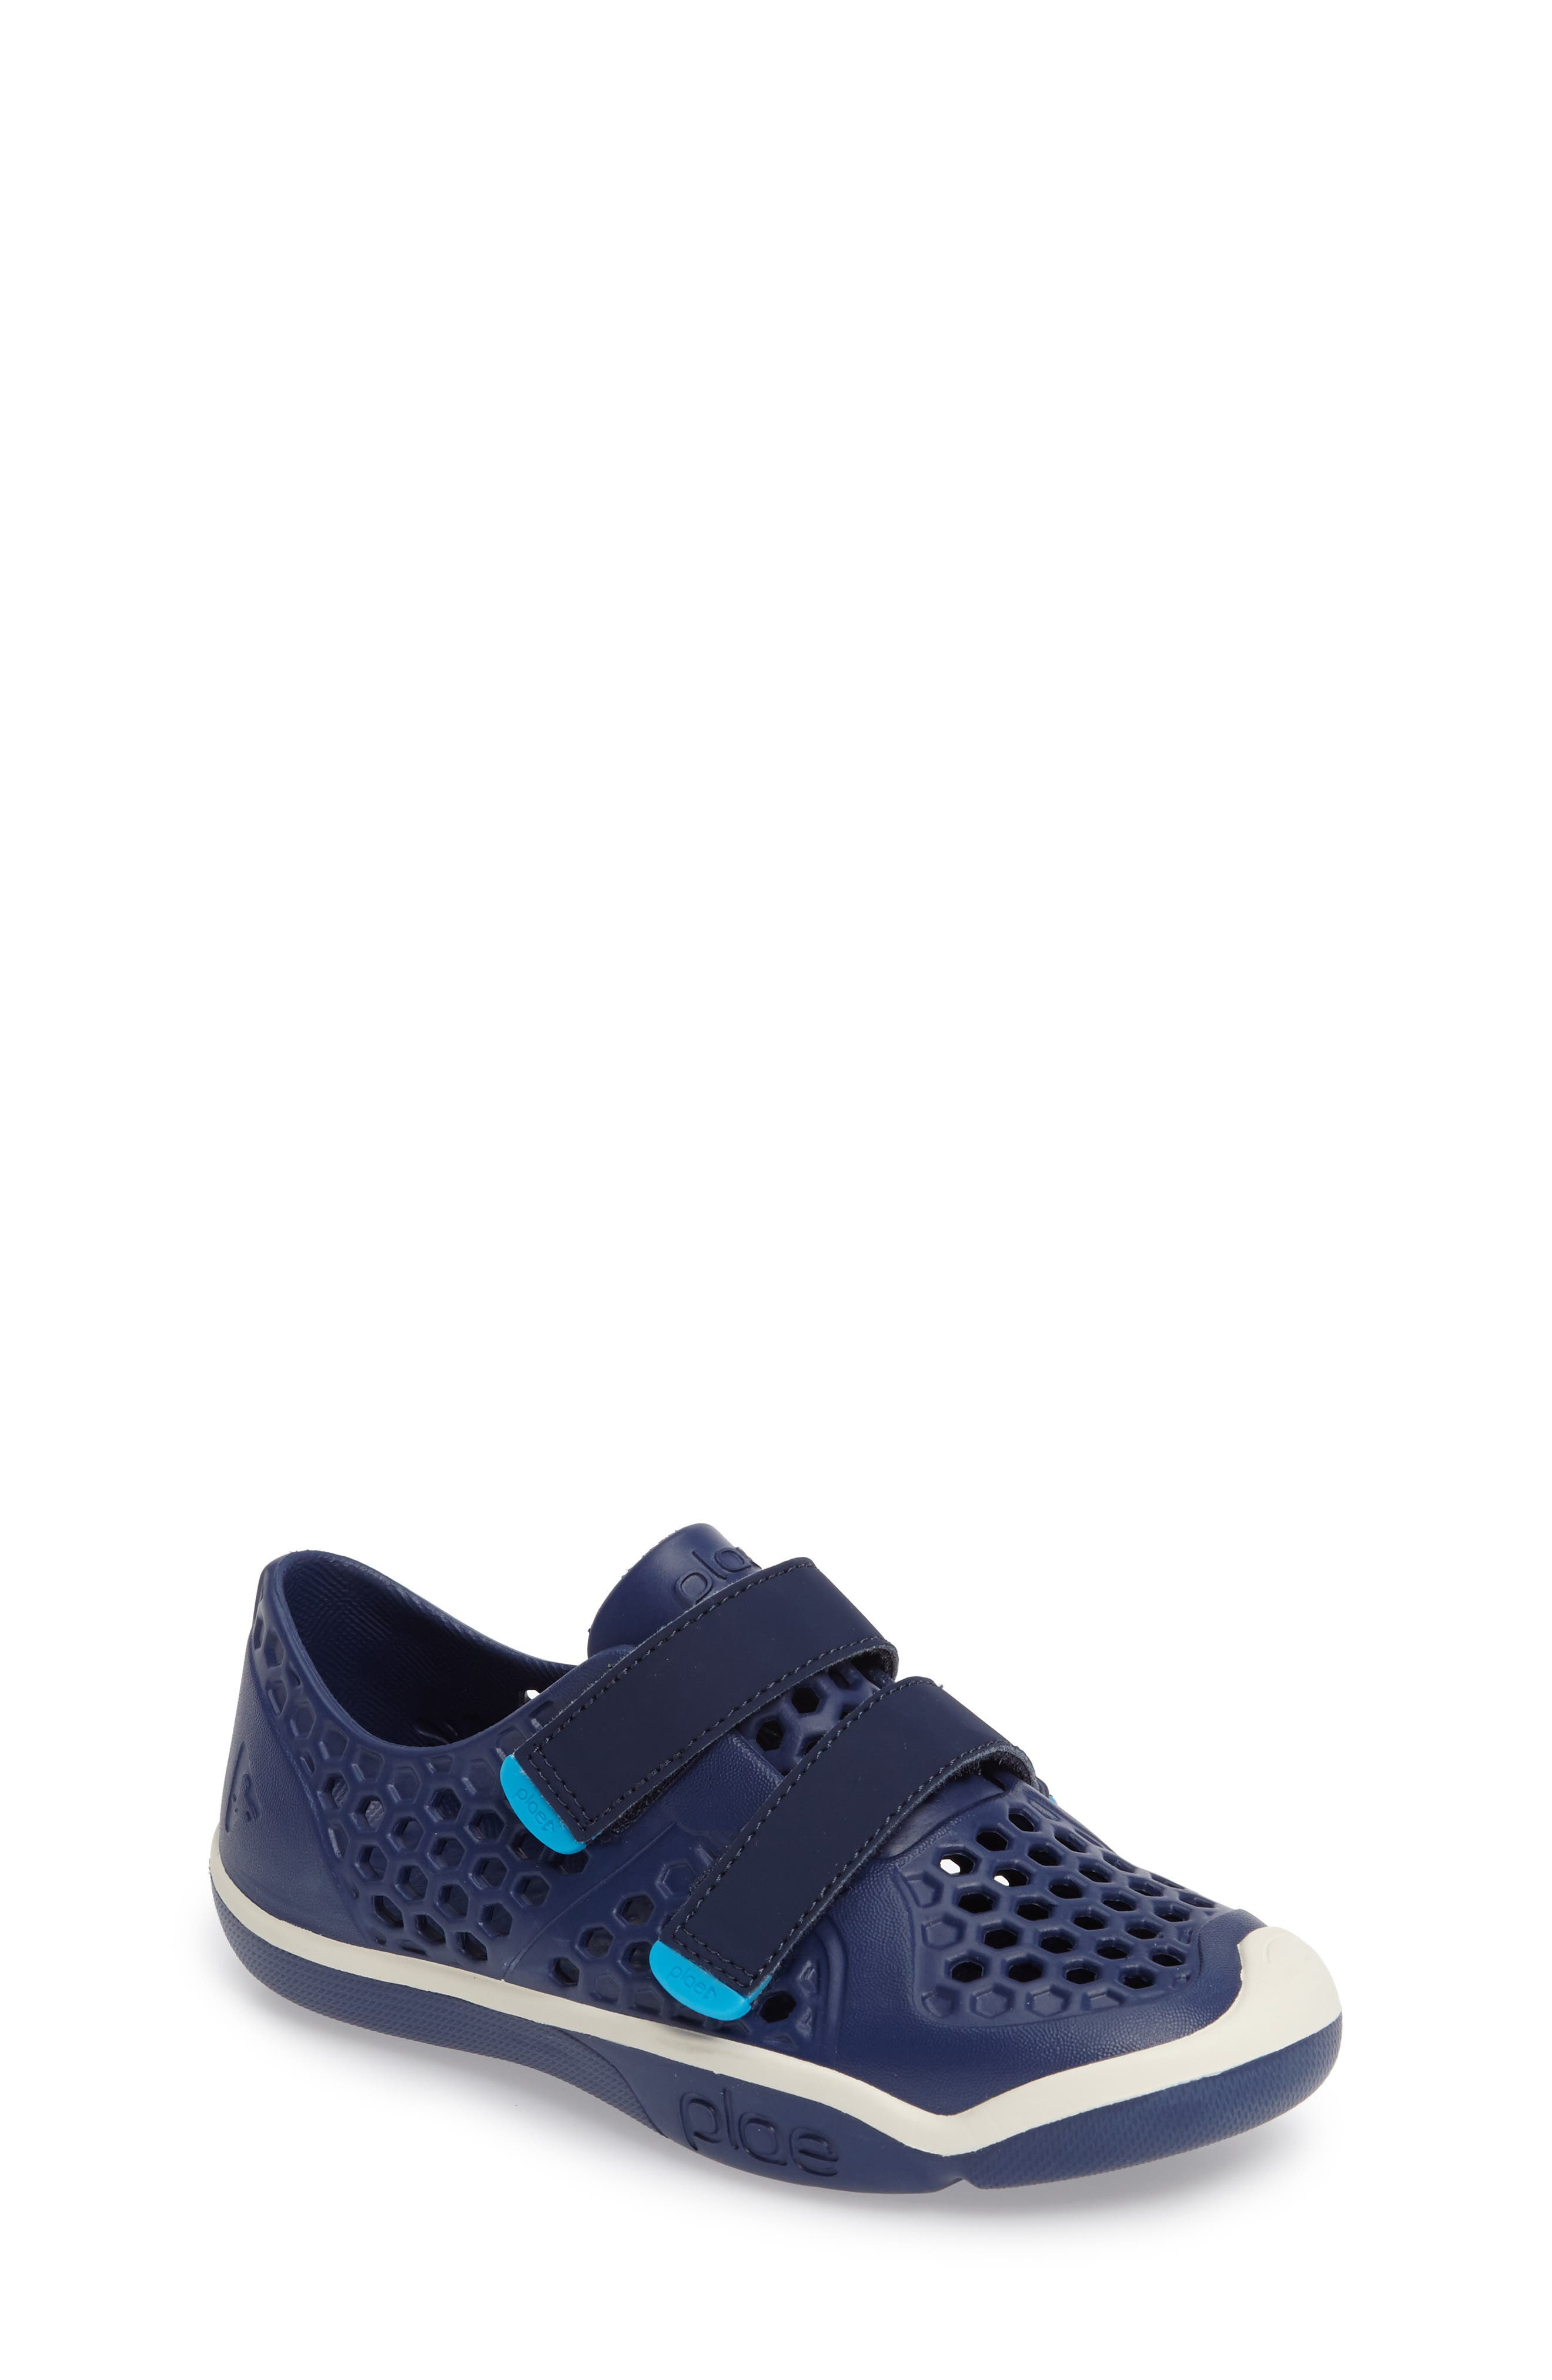 Main Image - PLAE Mimo Customizable Sneaker (Toddler & Little Kid)